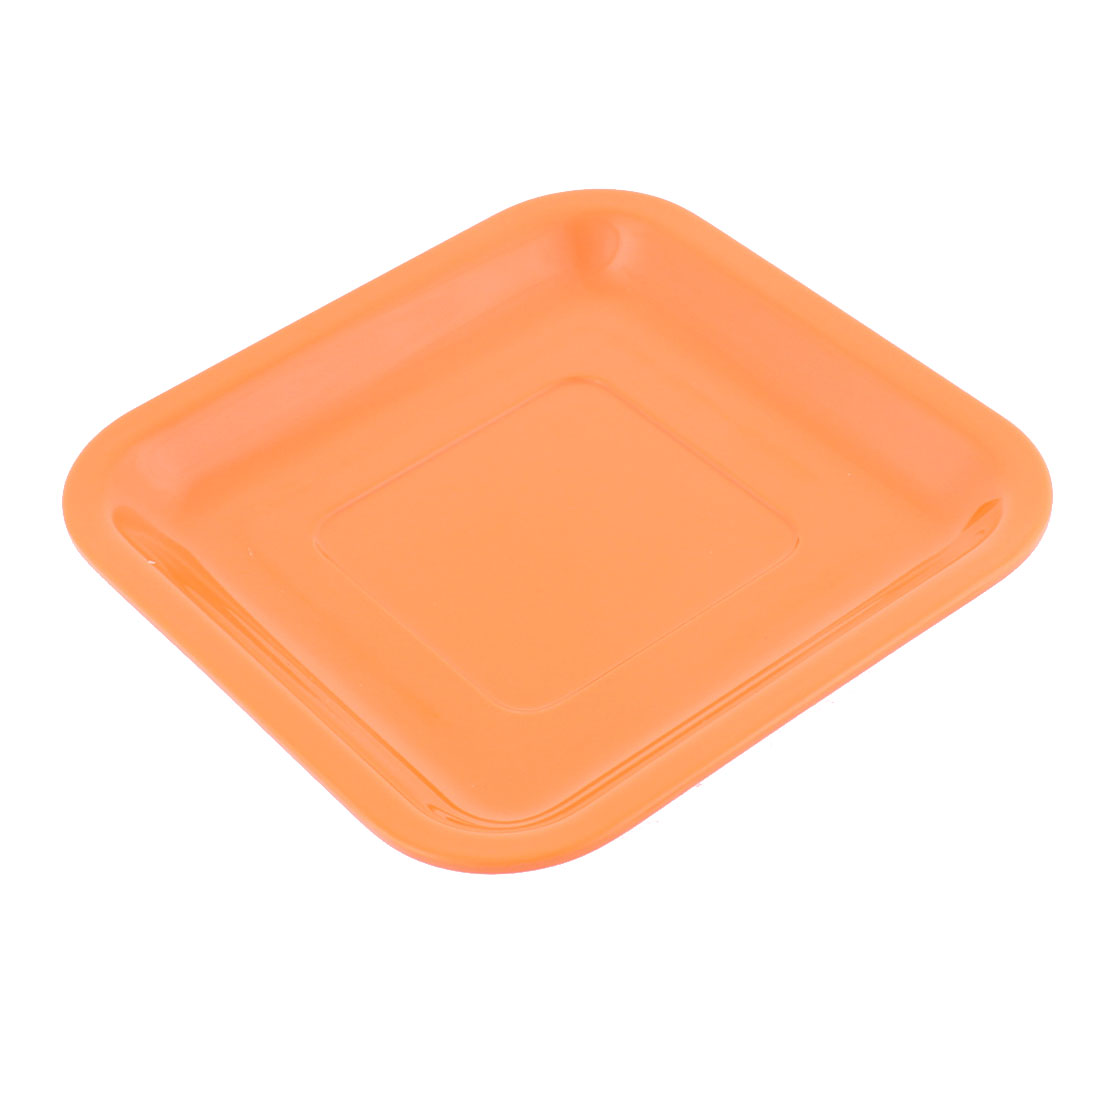 Restaurant Plastic Square Shaped Lunch Food Cake Dish Plate Container Orangered